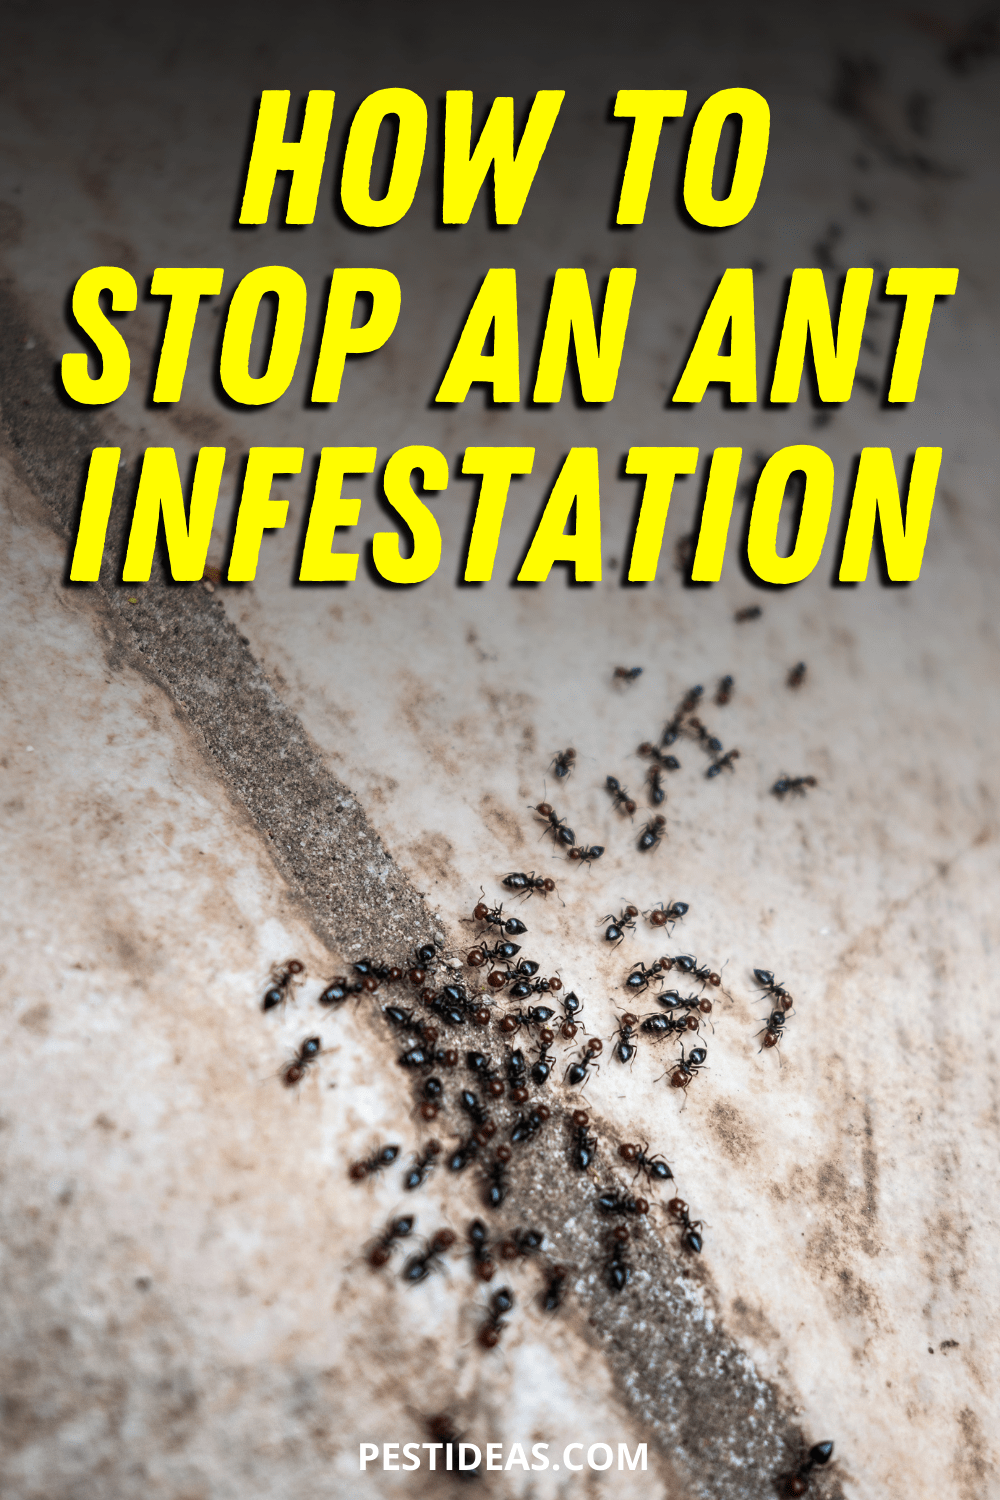 How to Stop an Ant Infestation